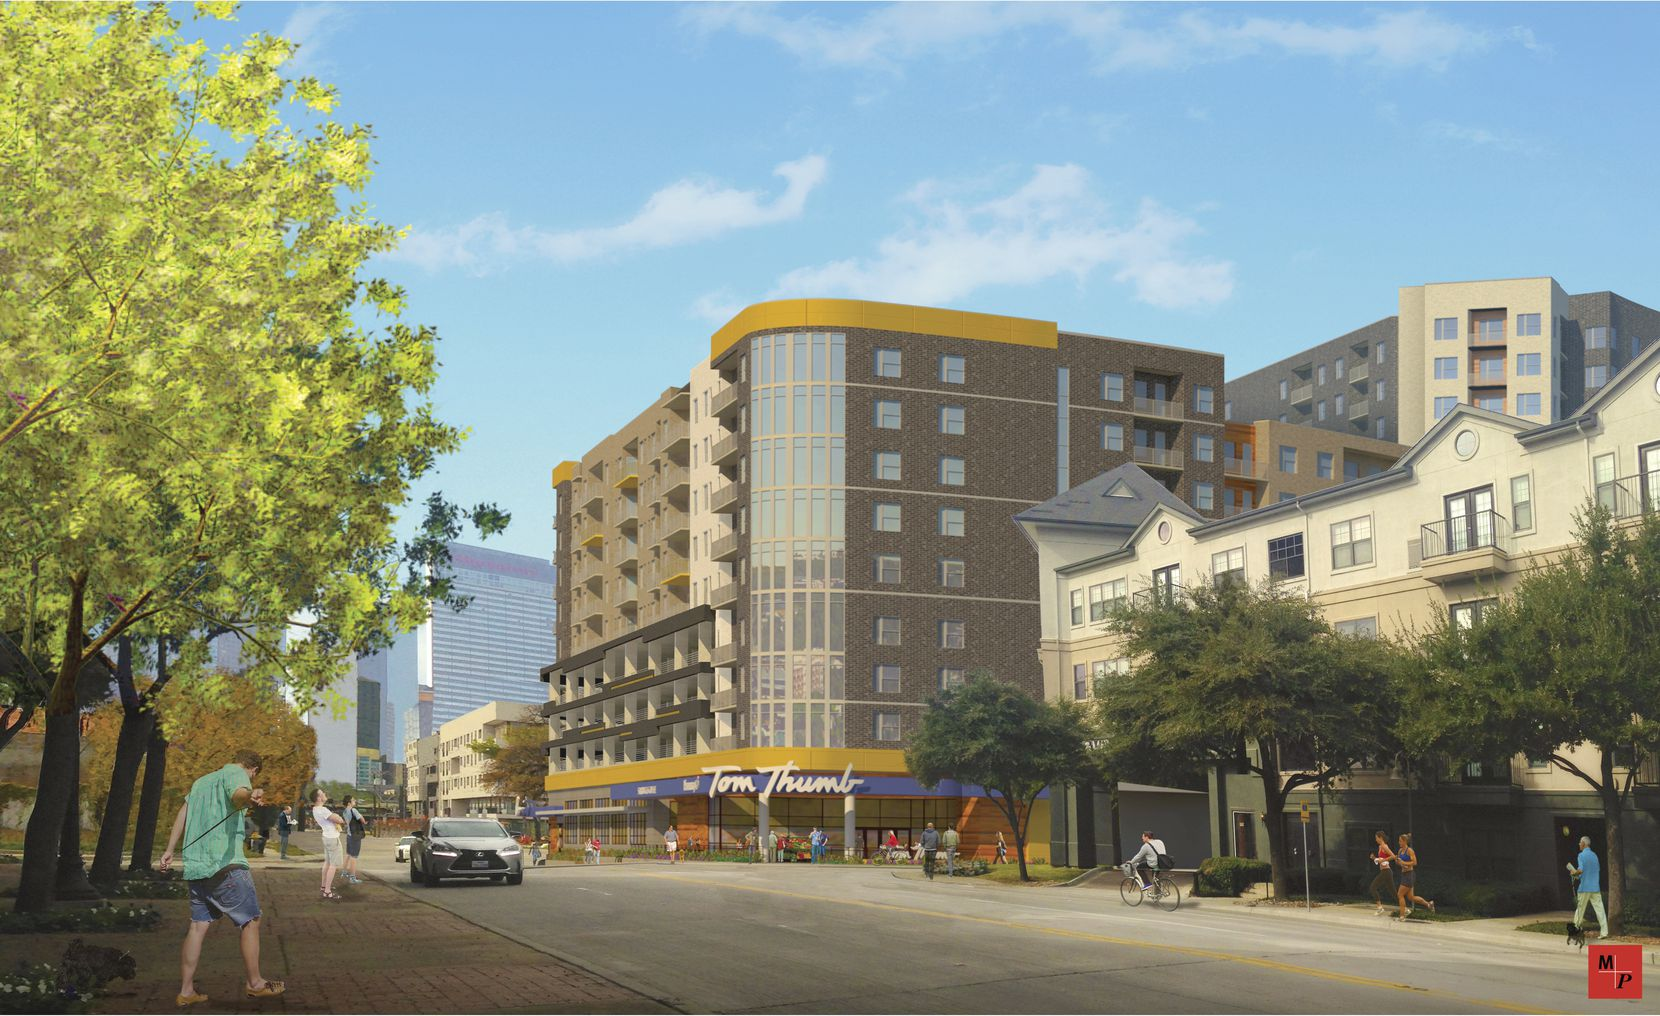 Tom Thumb will have a store in the ground floor of the building.